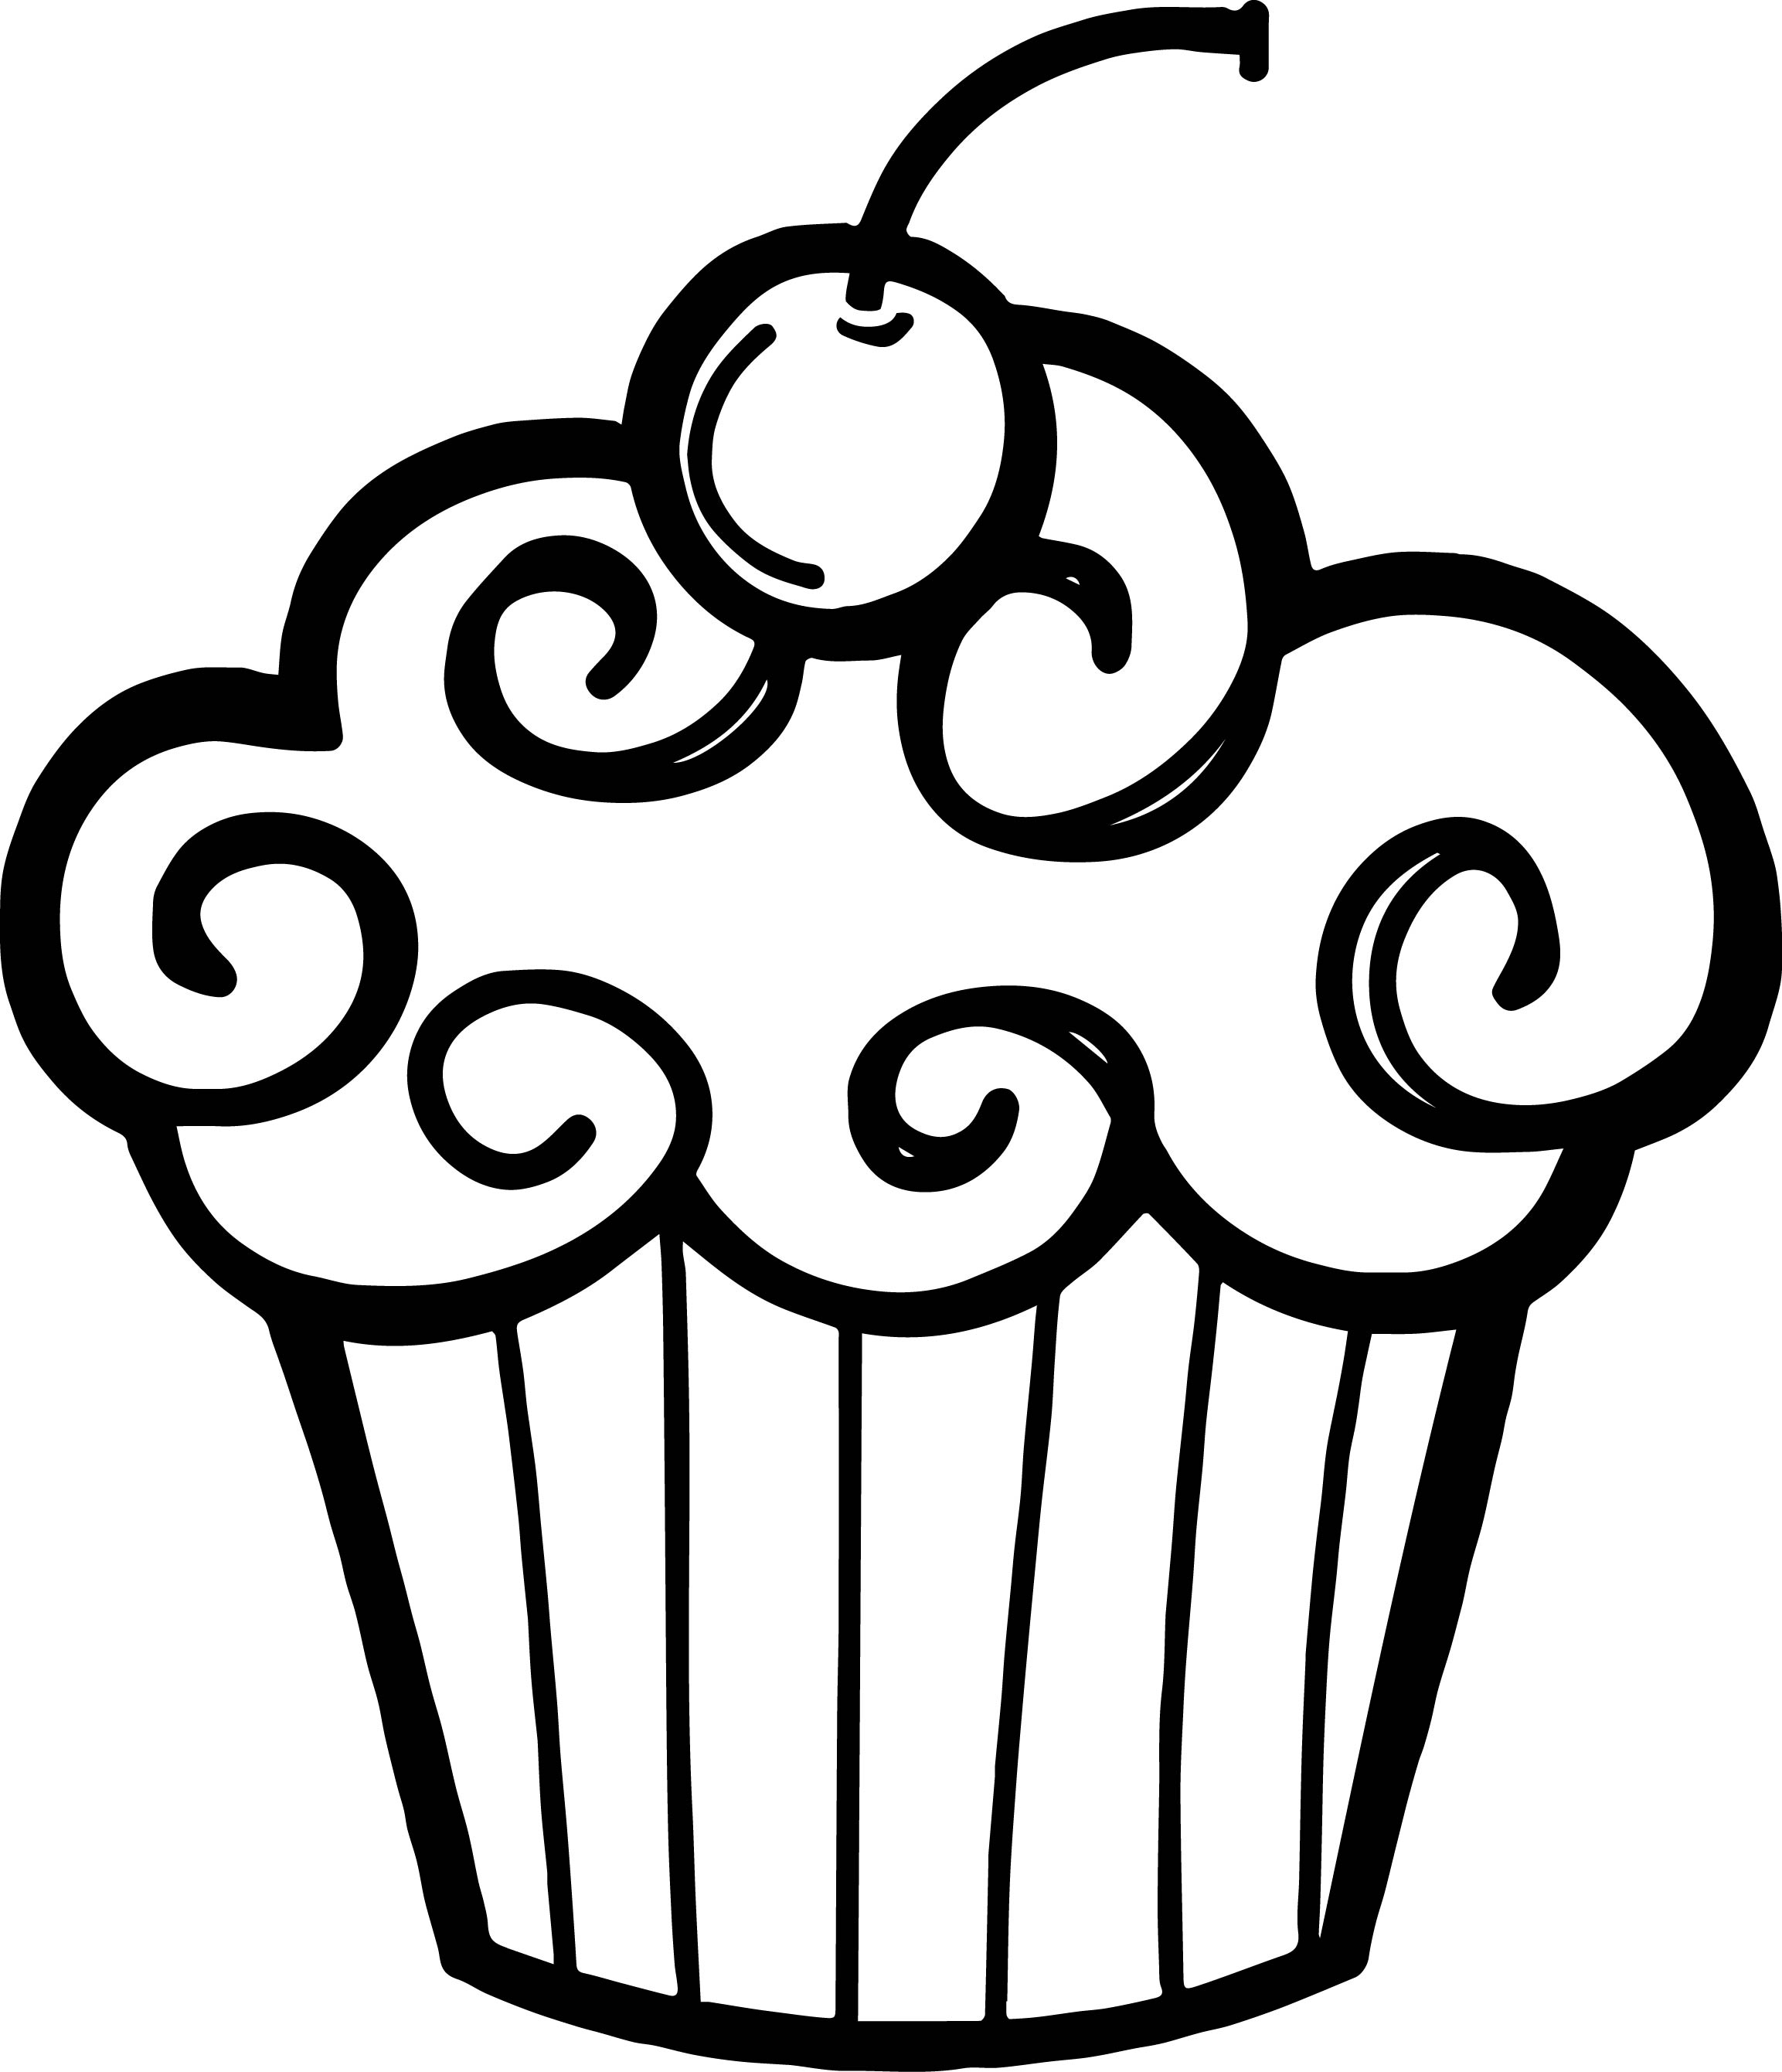 Cupcakes Images Clipart Black And White.